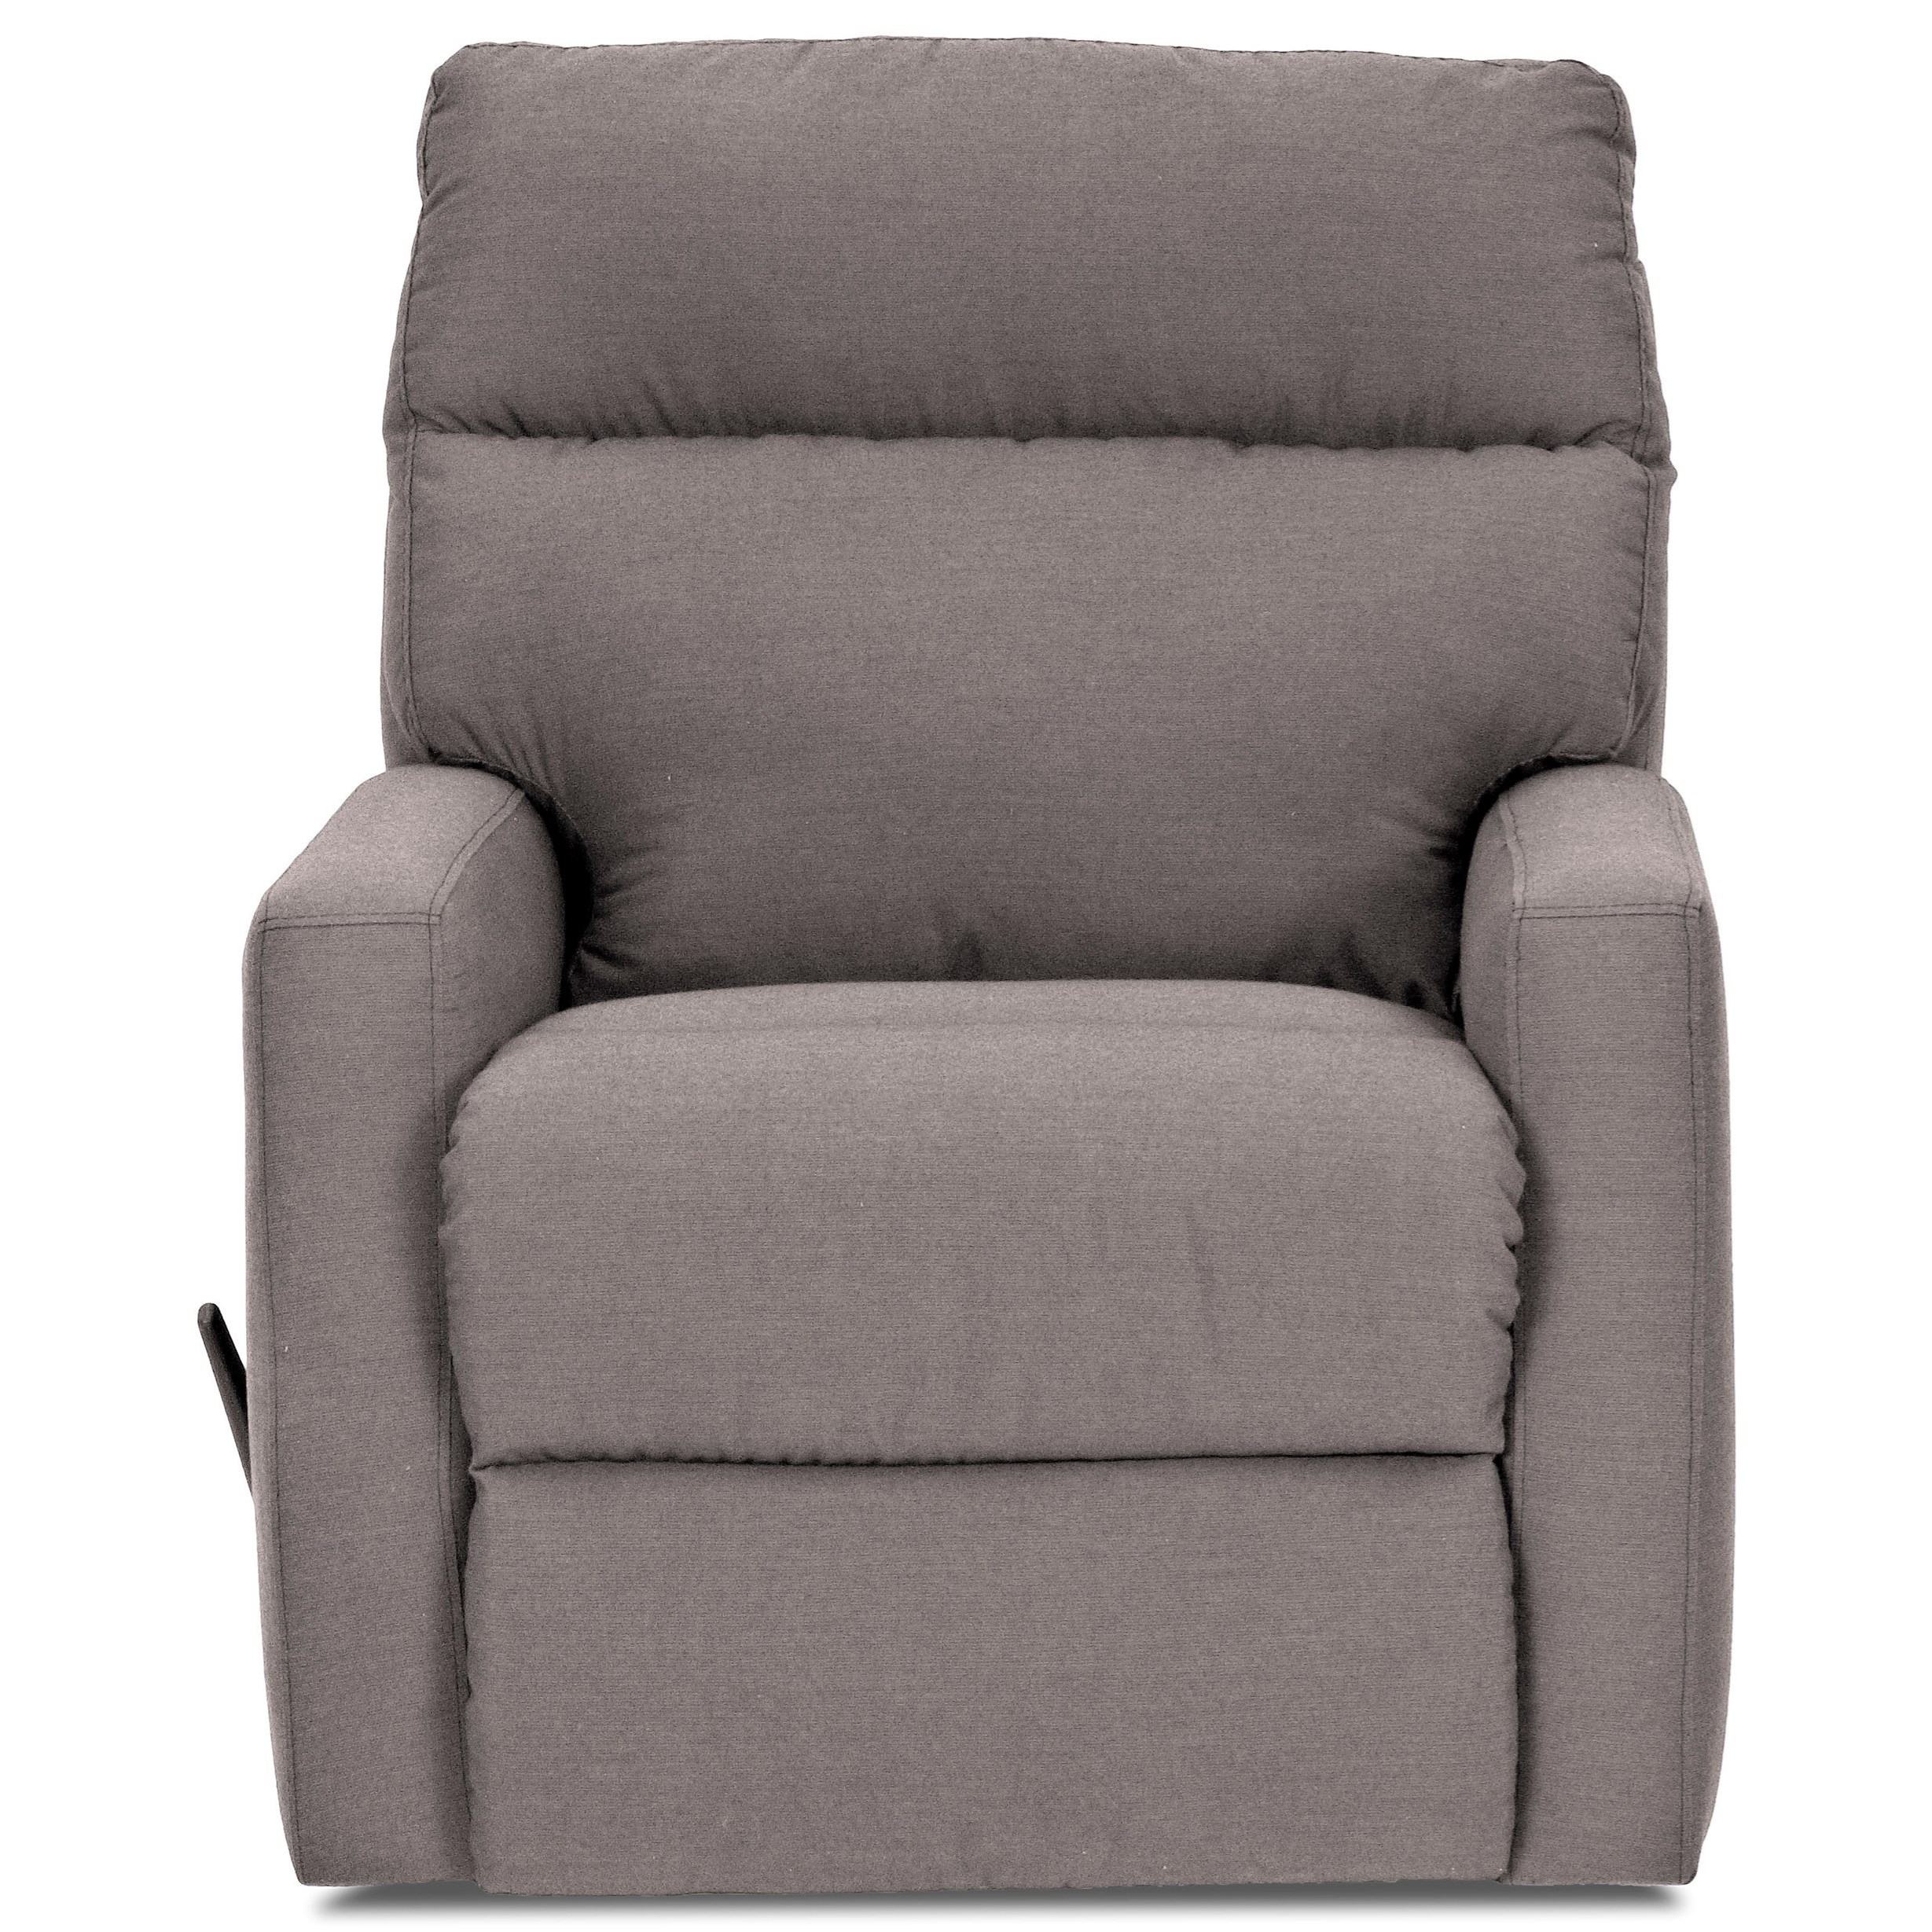 Daphne Swivel Rocking Reclining Chair by Klaussner at Northeast Factory Direct